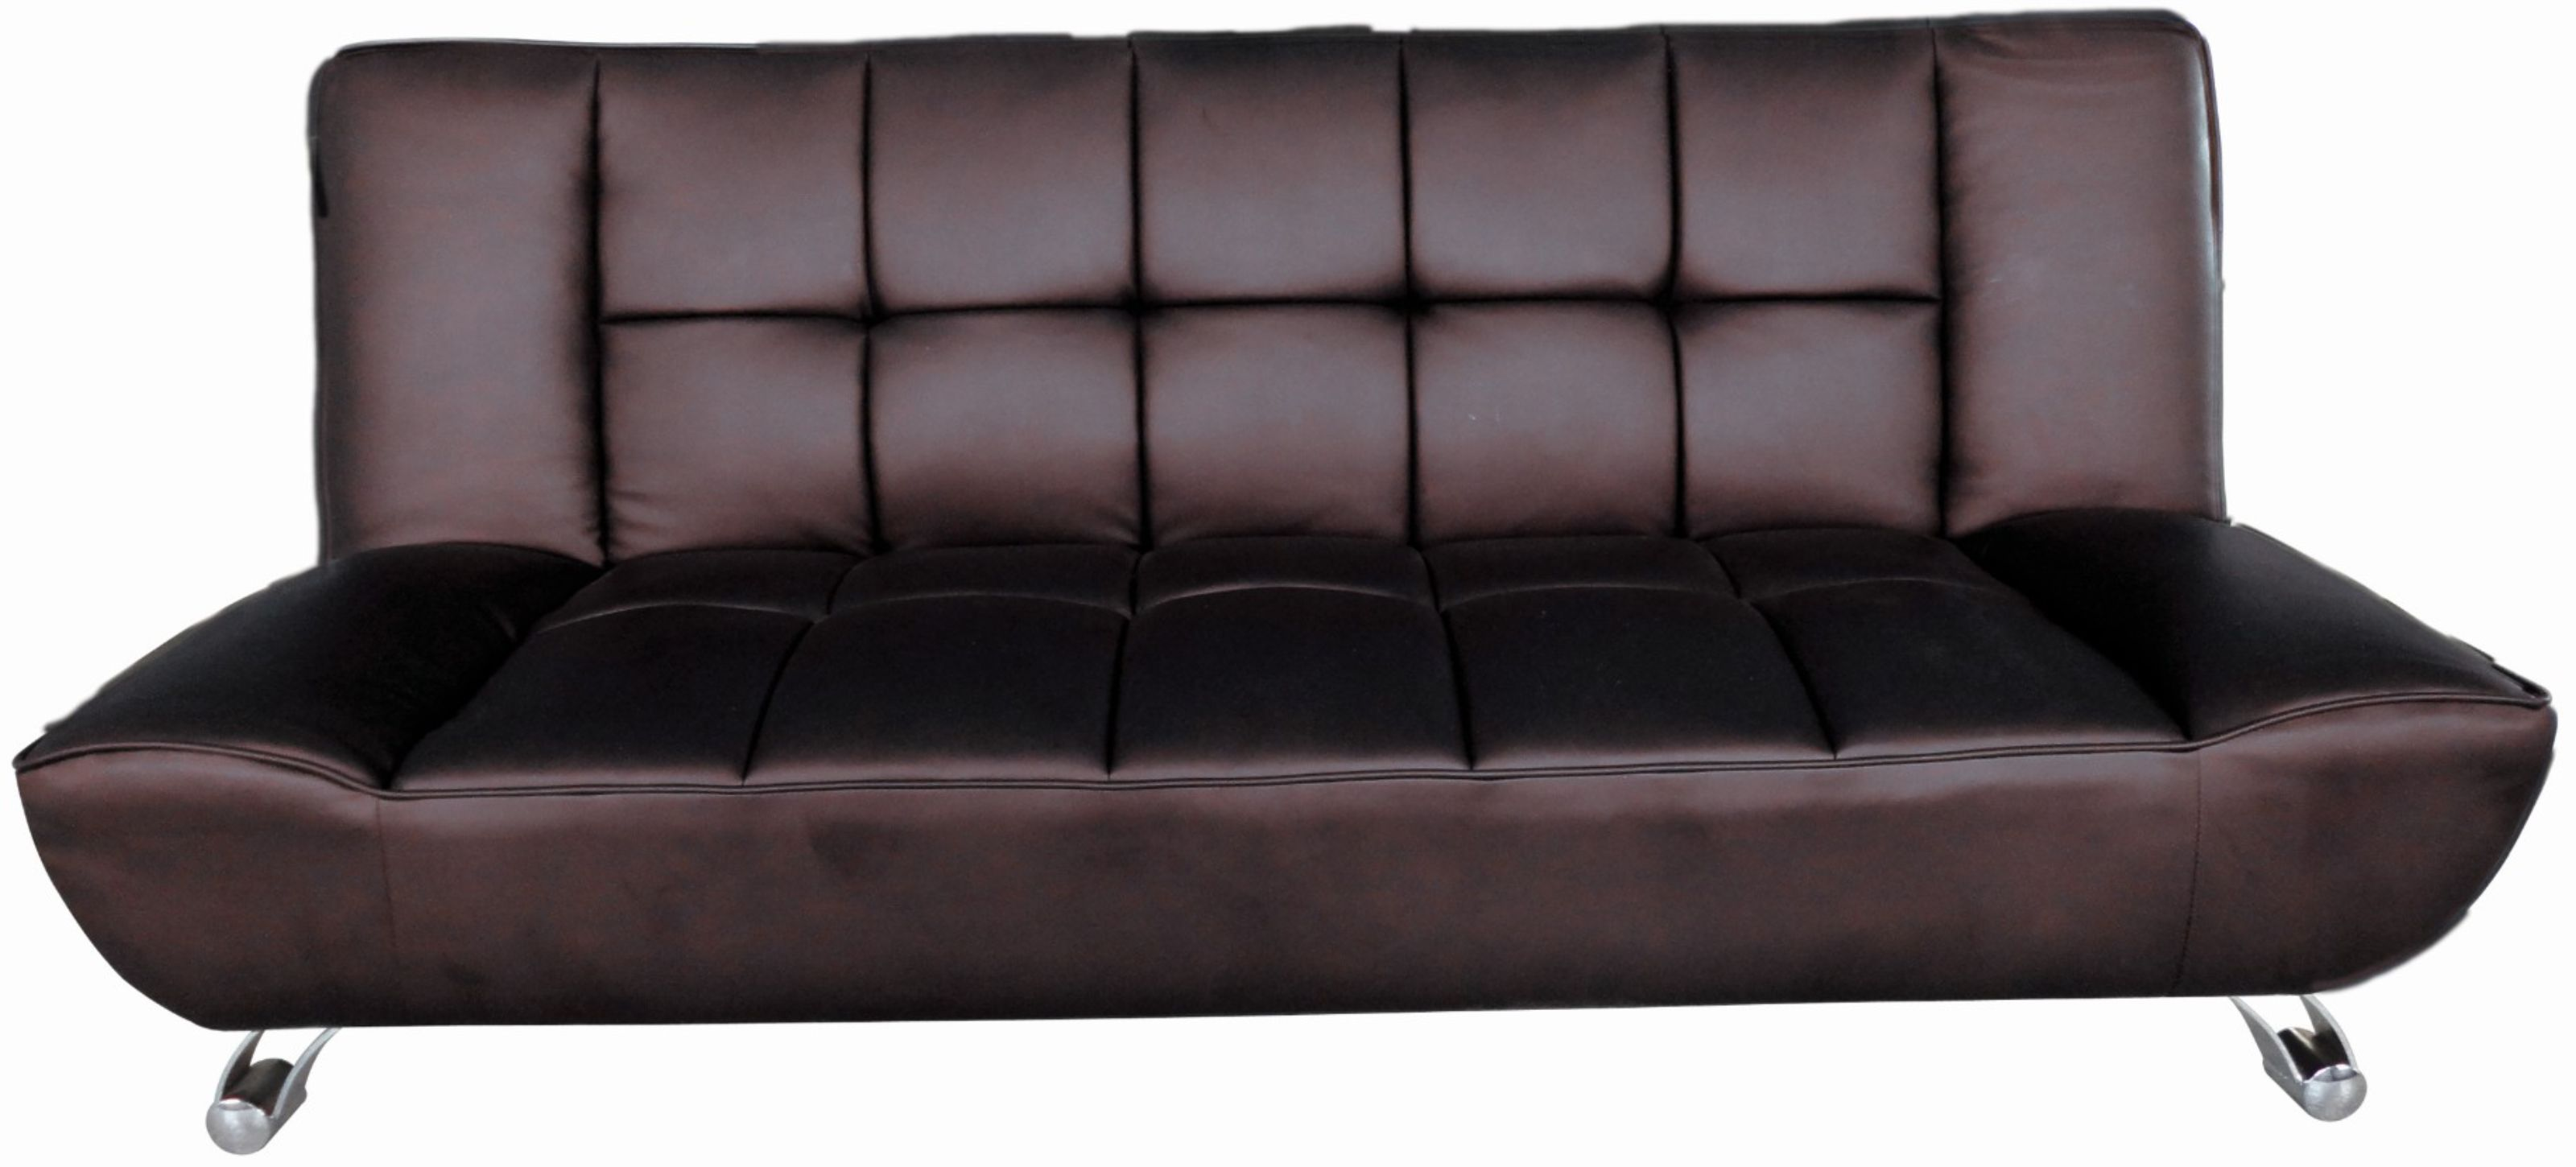 Vogue Faux Leather Brown Sofa Bed